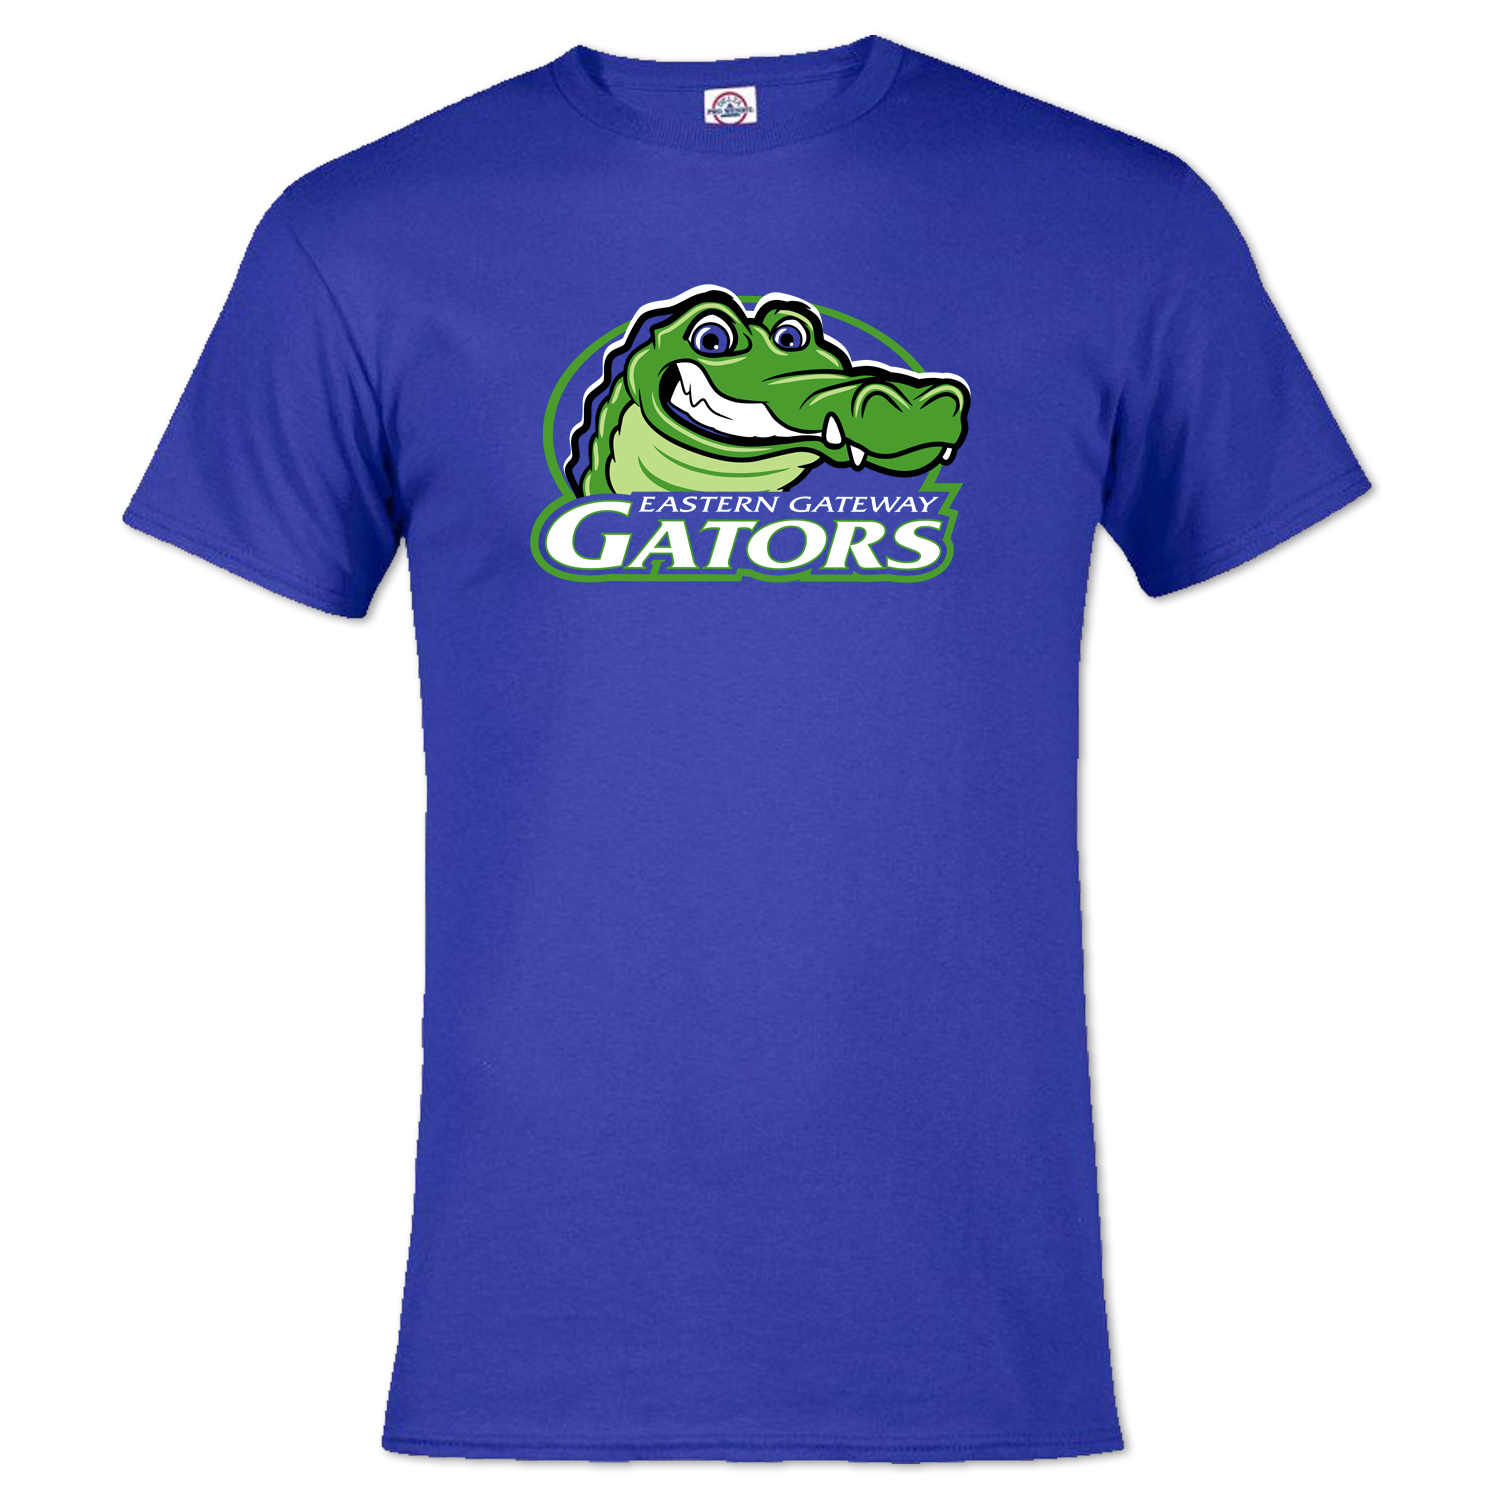 Image for the Gator head Tee product